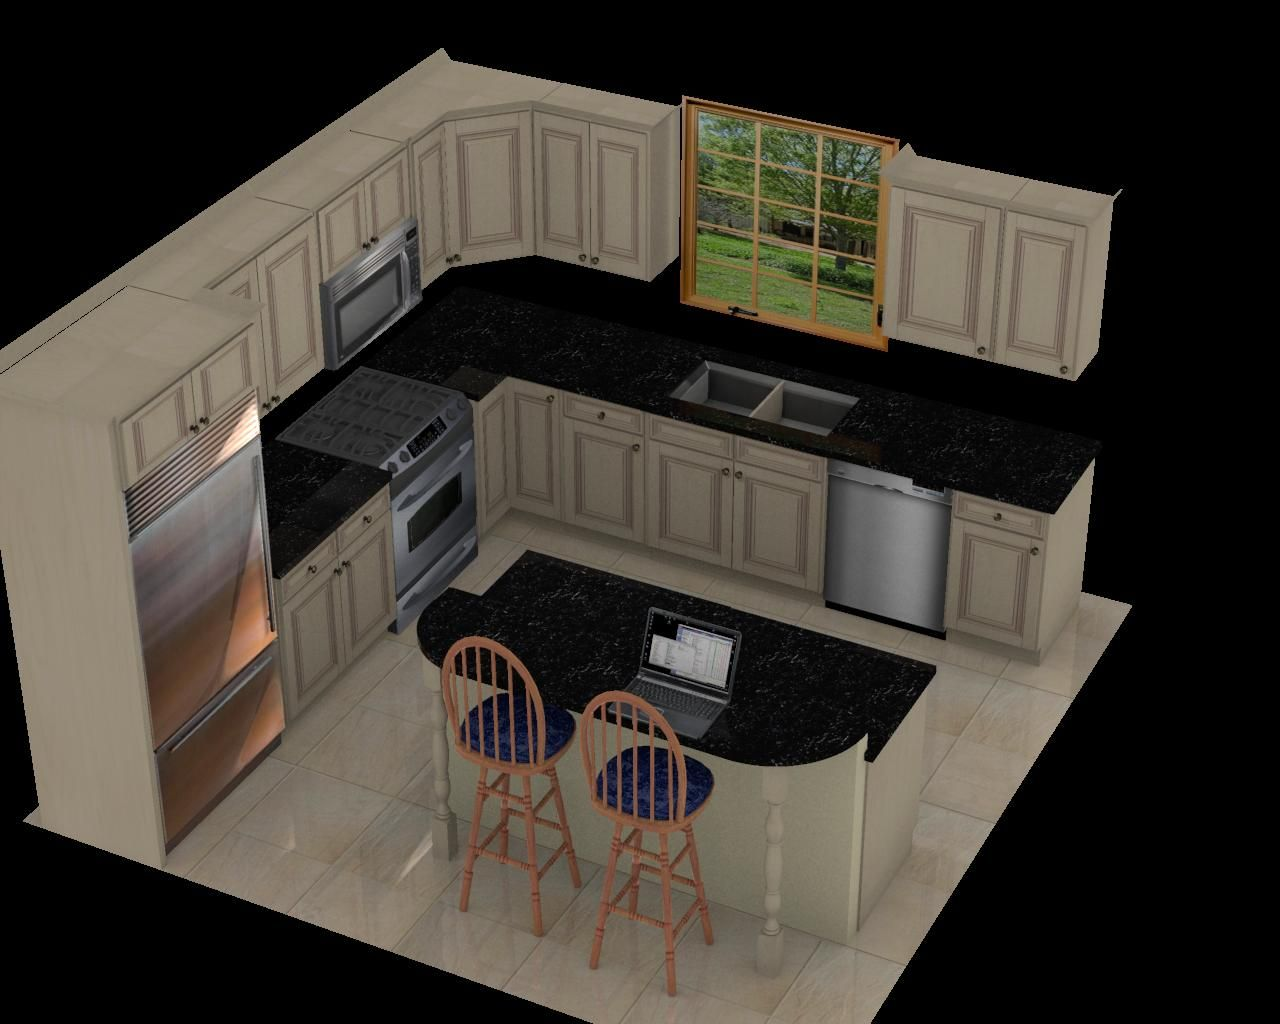 Luxury 12x12 kitchen layout with island 51 for with 12x12 for Small kitchen layout with island